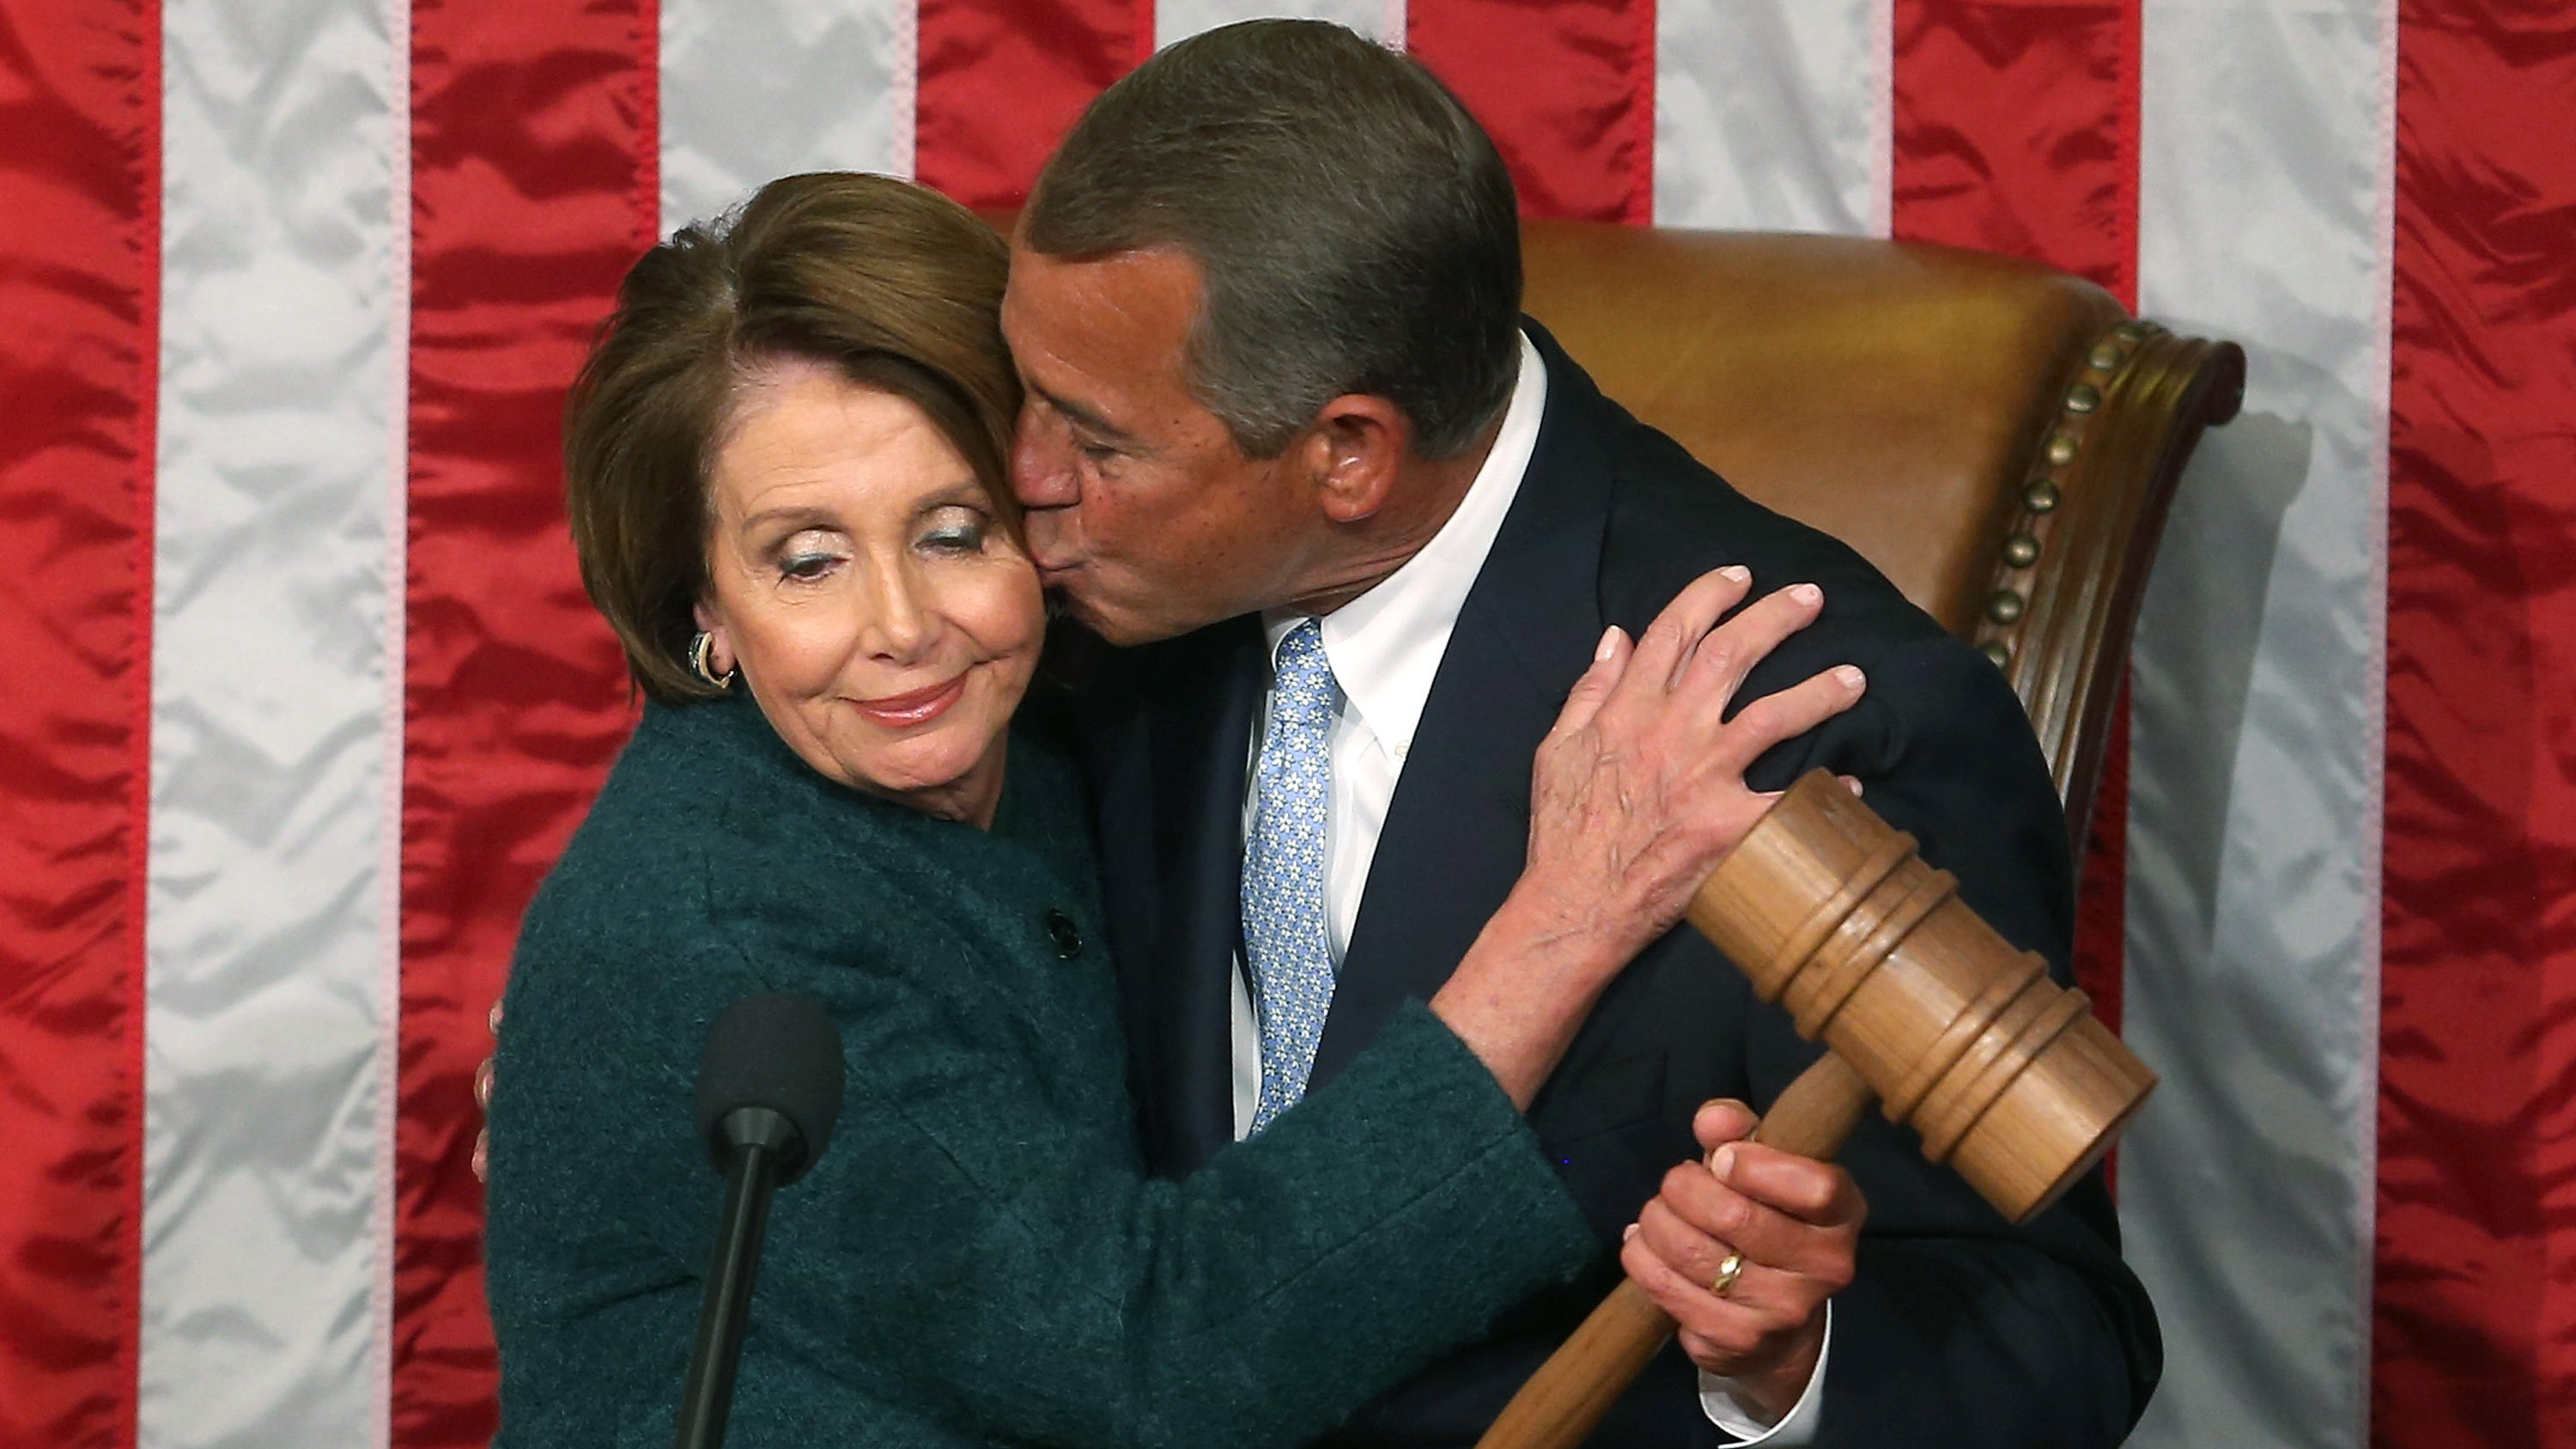 House Speaker John Boehner takes the gavel from Democratic Minority Leader Nancy Pelosi Jan. 6 at the start of the 114th Congress. Mark Wilson/Getty